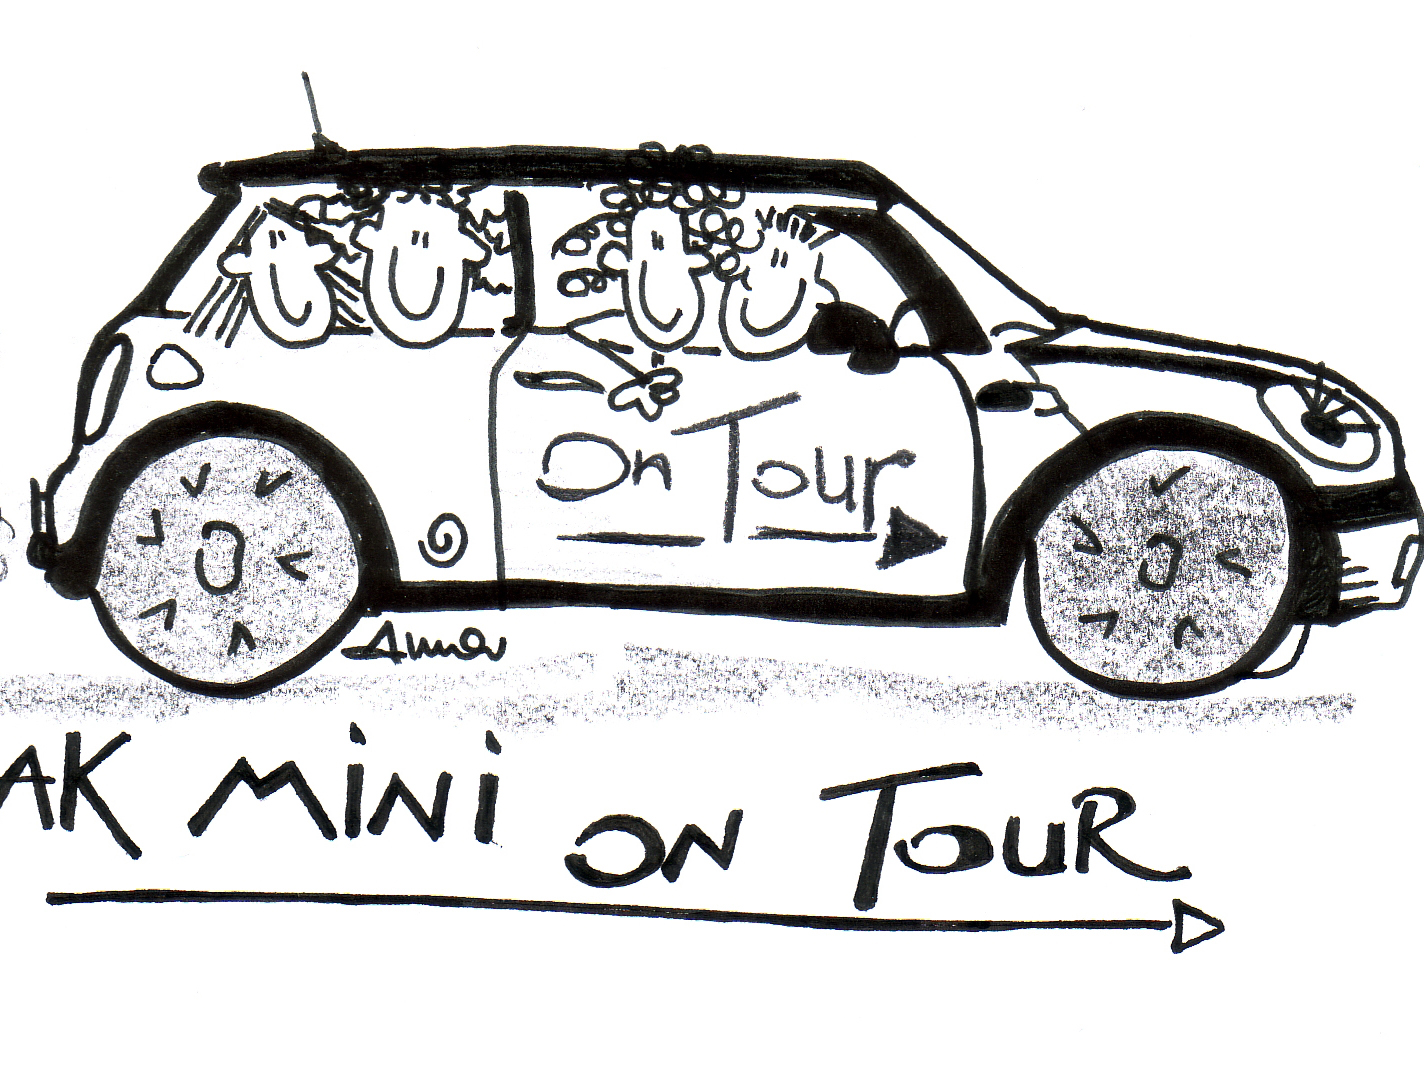 Start: AK Mini on tour - sounds good